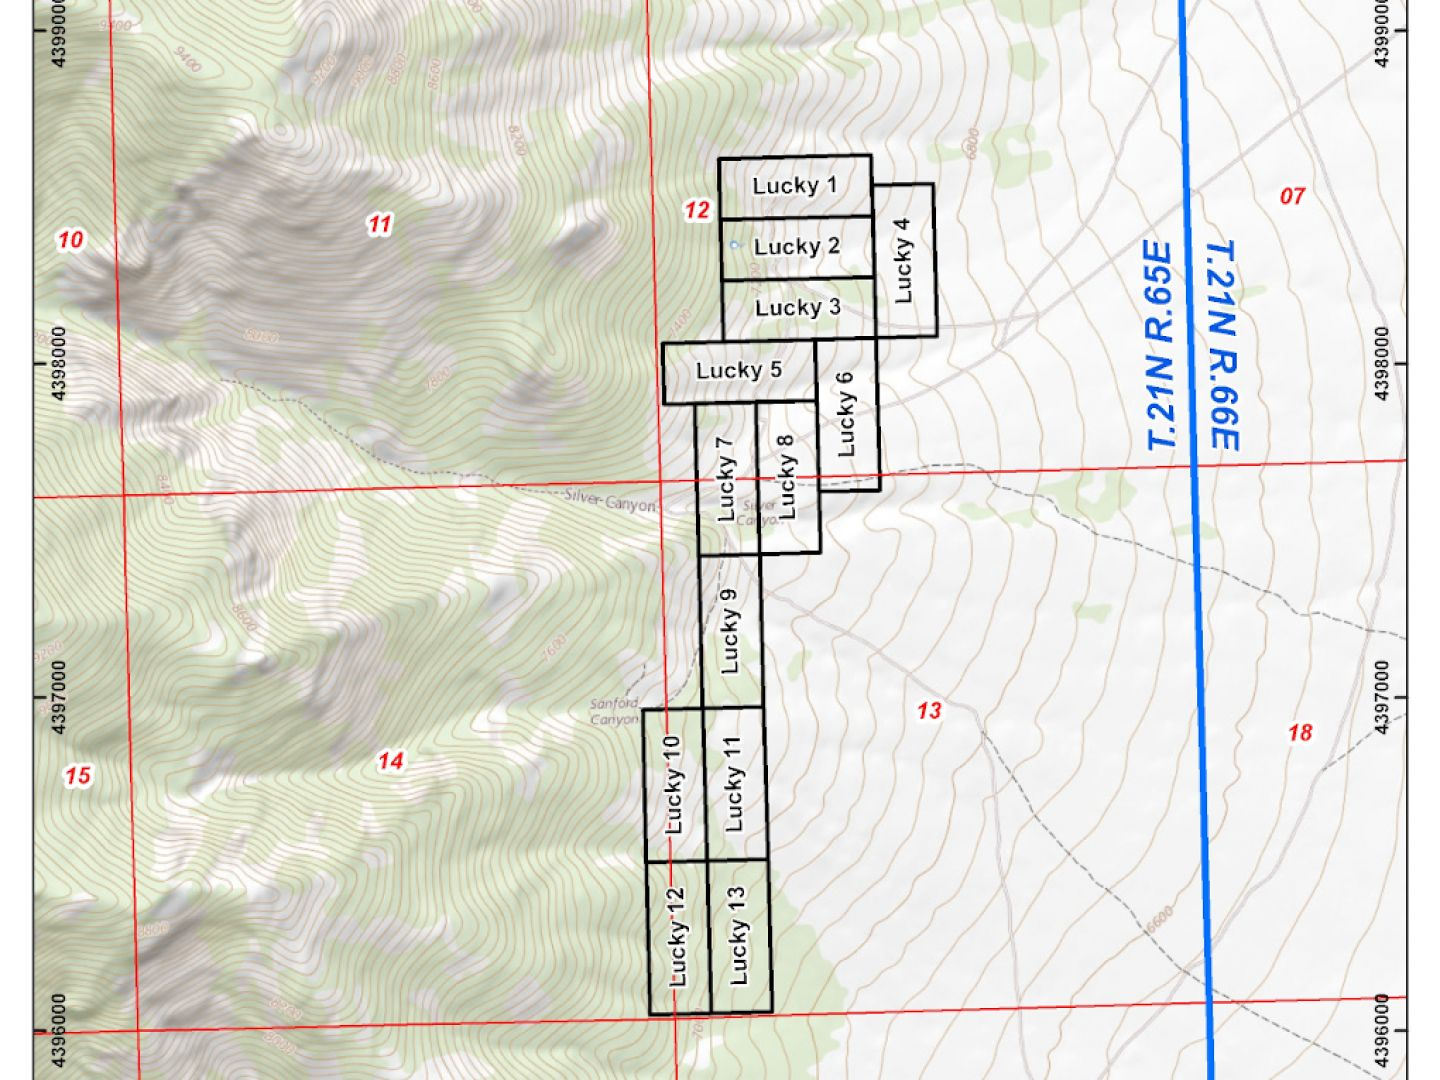 Lucky Project - Claim Location Map